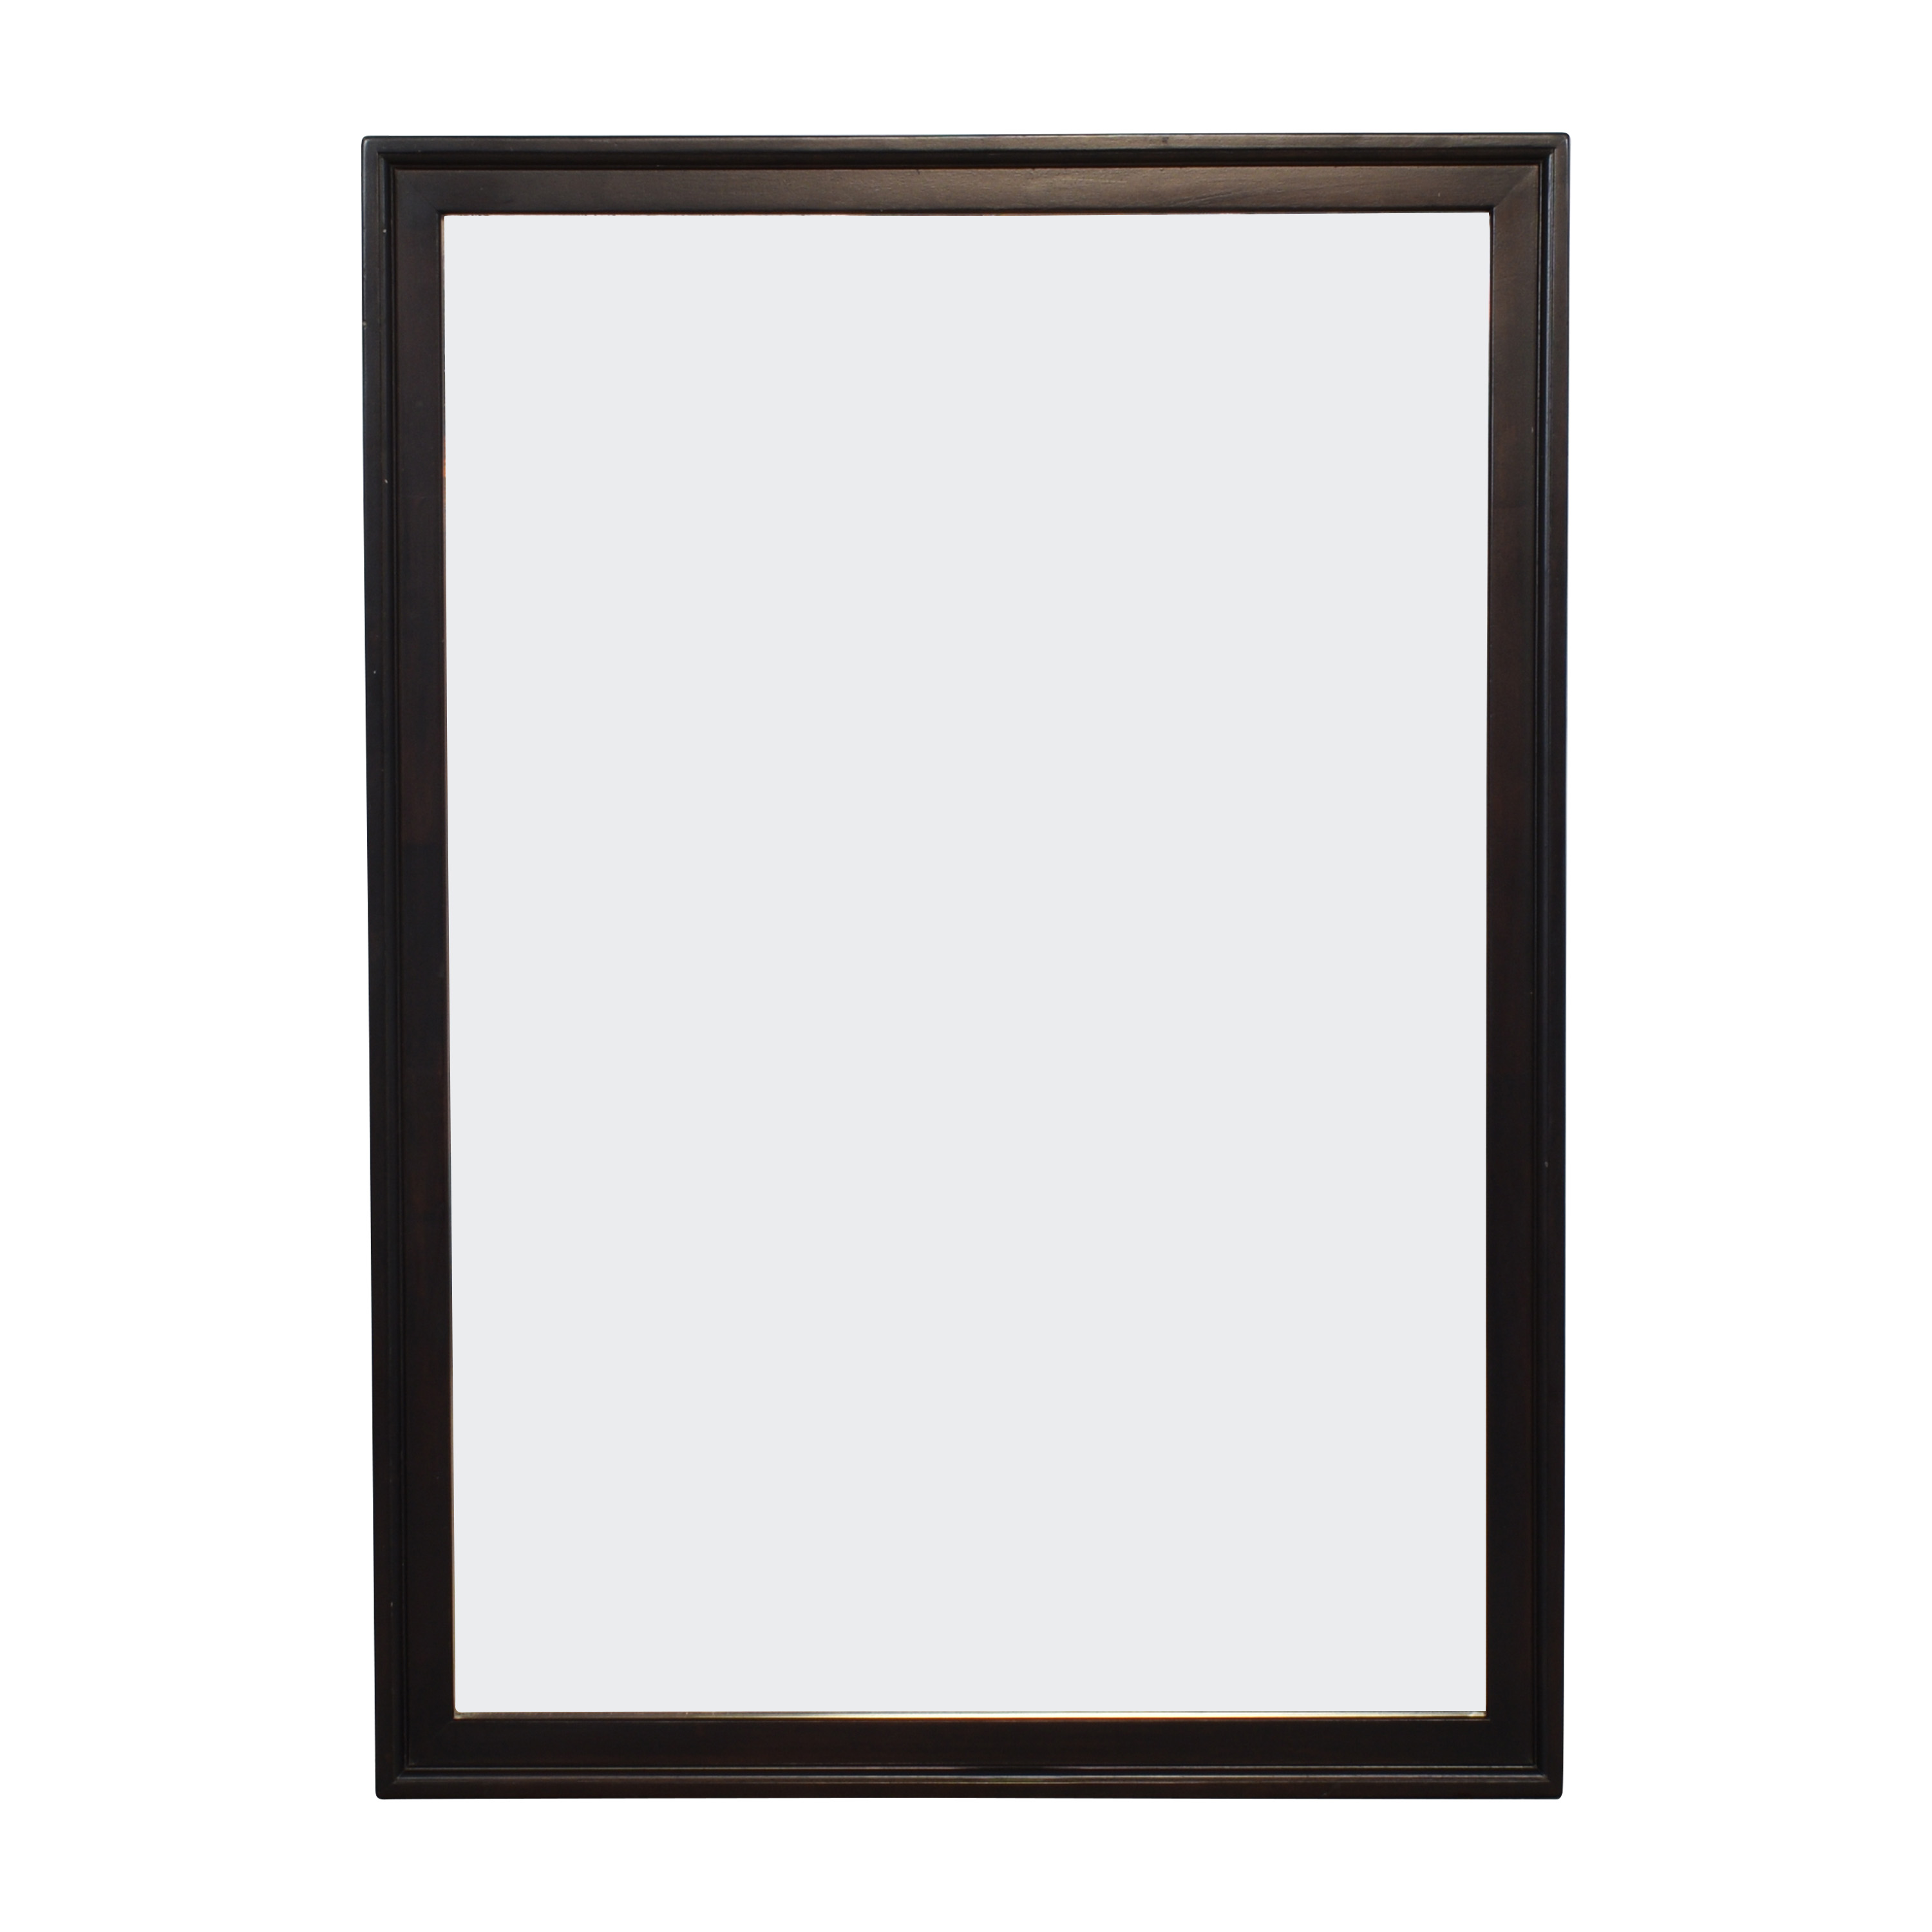 Ashley Furniture Ashley Furniture Wall Mirror coupon